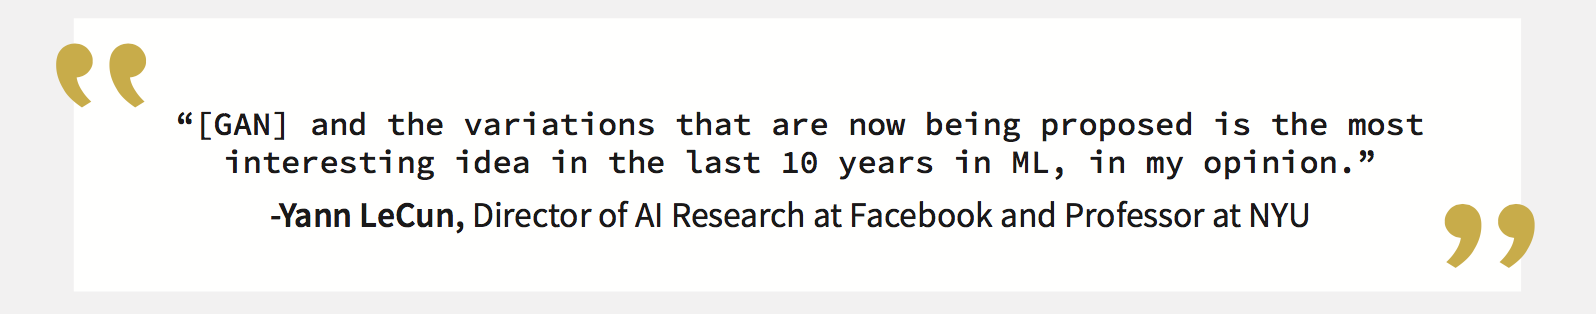 quote-yann-lecun-new.png